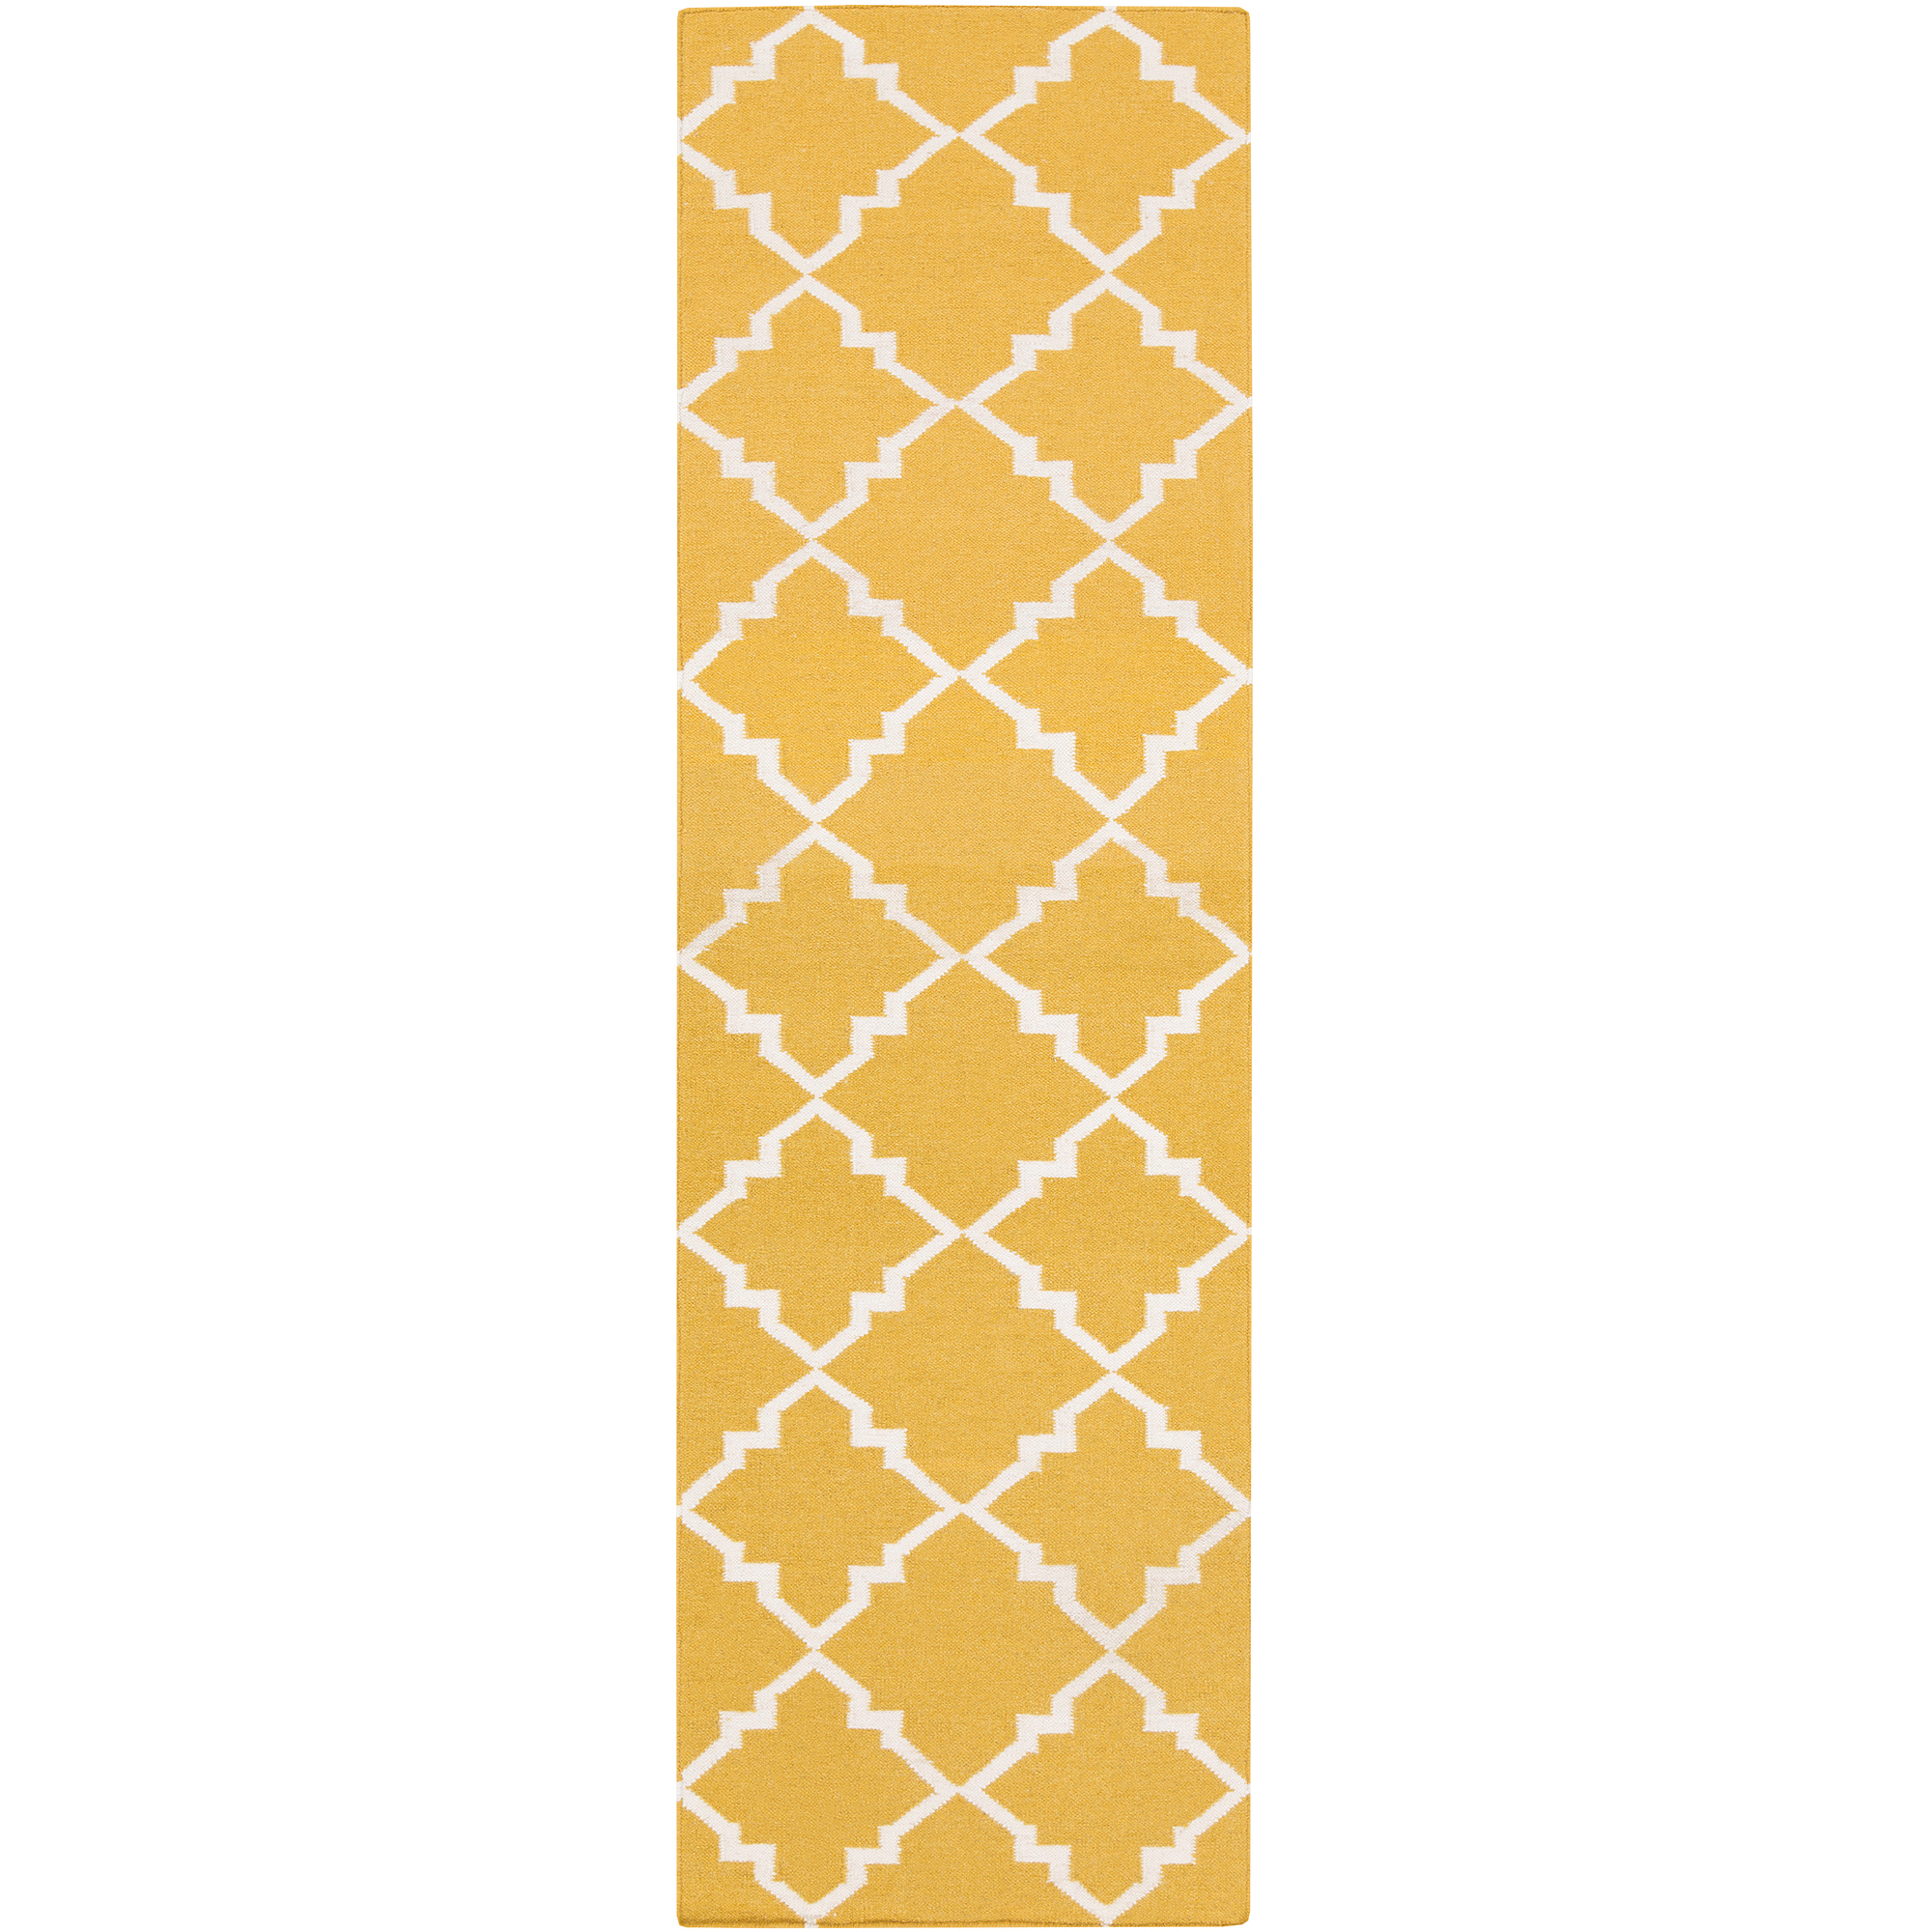 Libby Langdon Prichard Hand Woven Gate Scroll Flatweave Wool Runner, Gold